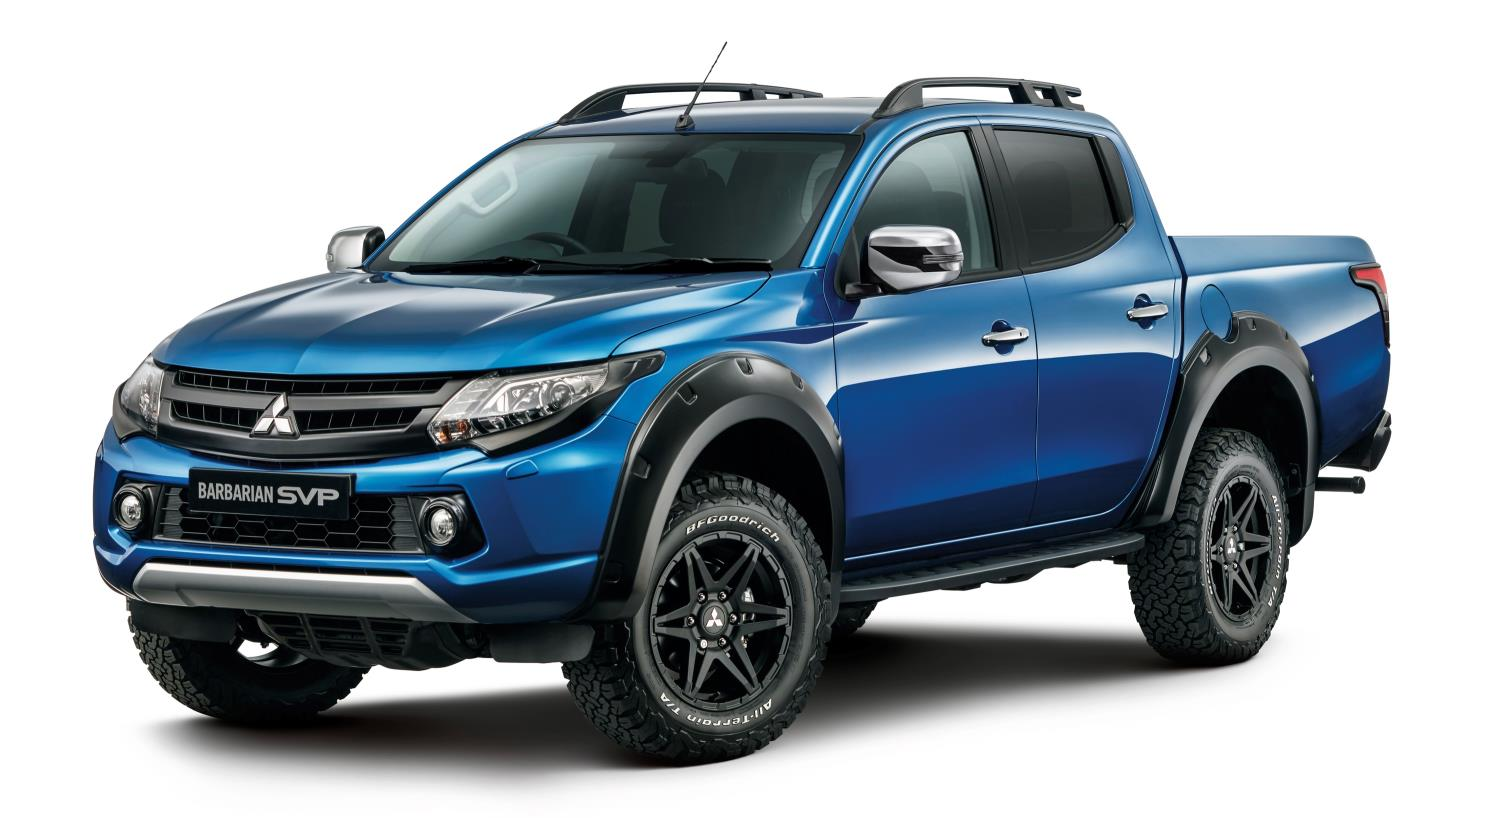 Mitsubishi Triton Barbarian SVP - limited to 250 units